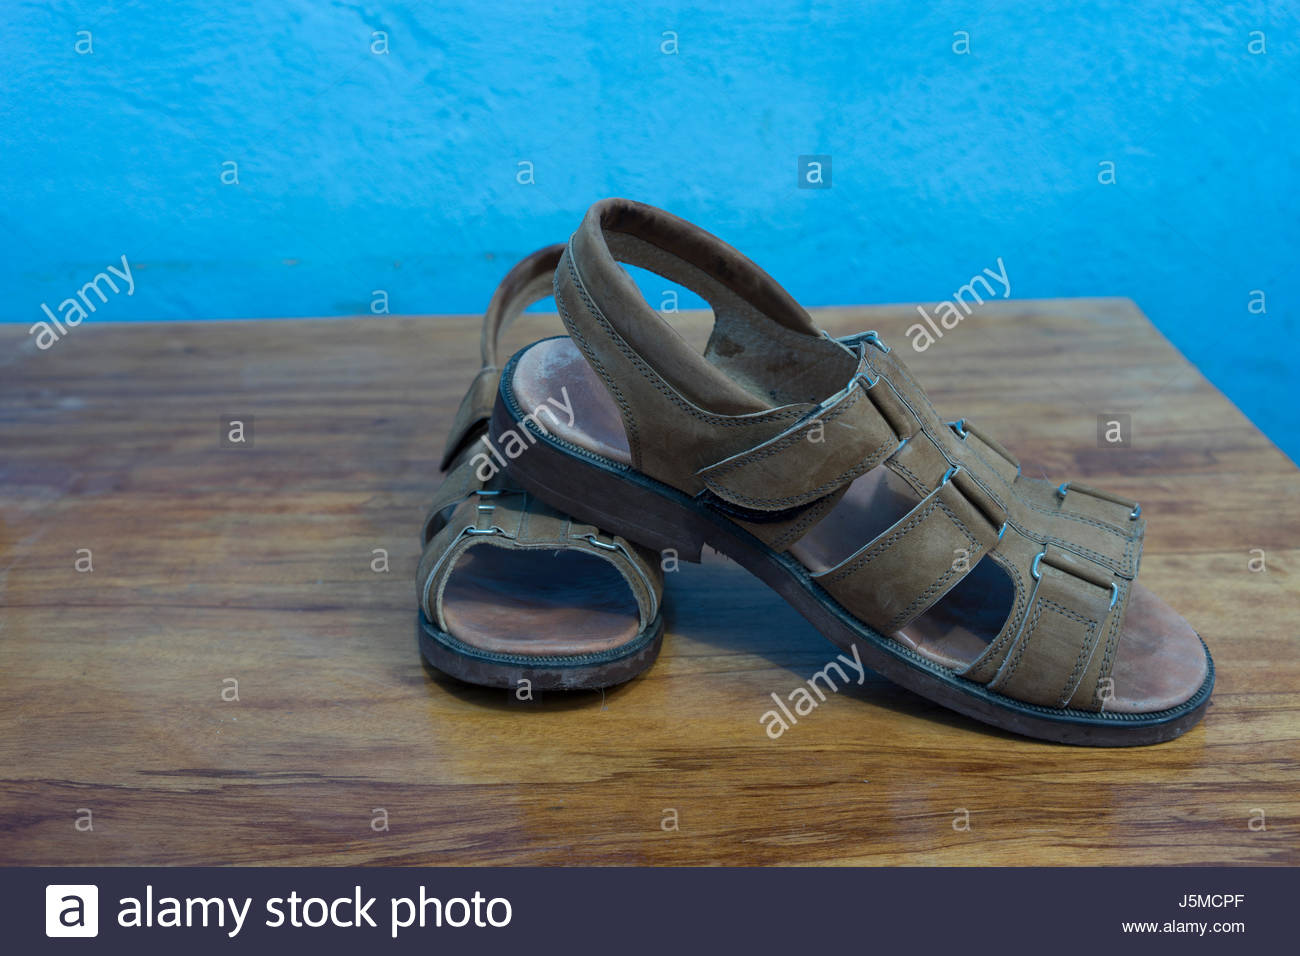 A pair of custom-made sandals from a Nicaraguan shoemaker - Stock Image